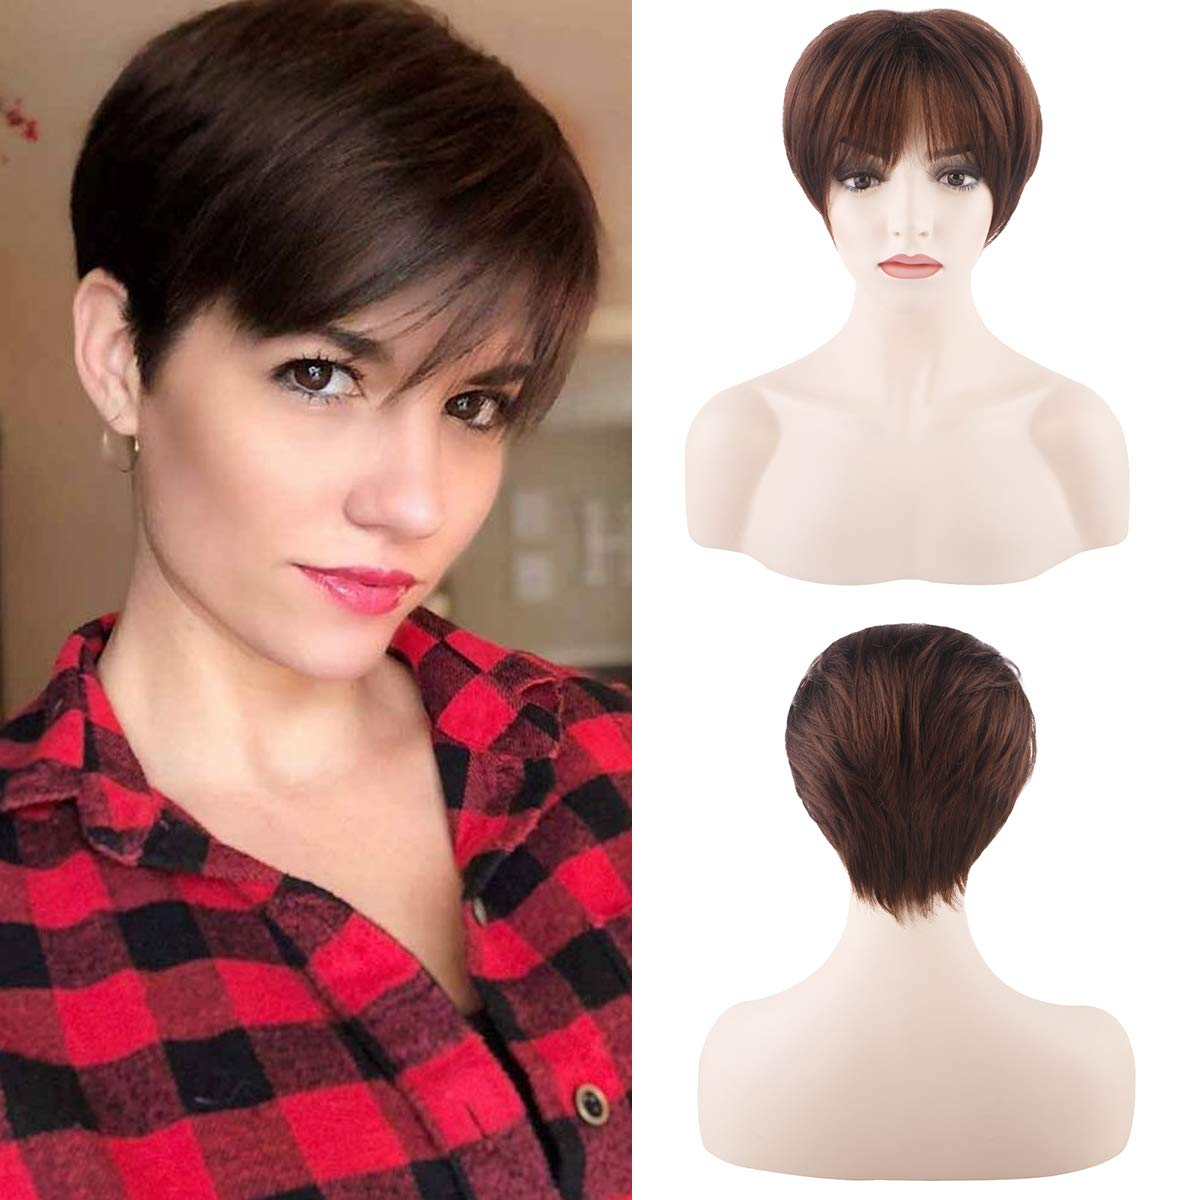 Short 100% Human Hair Wigs With Bangs Dark Brown Pixie Cut Hair Cosplay Costume Straight Full Replacement Wig